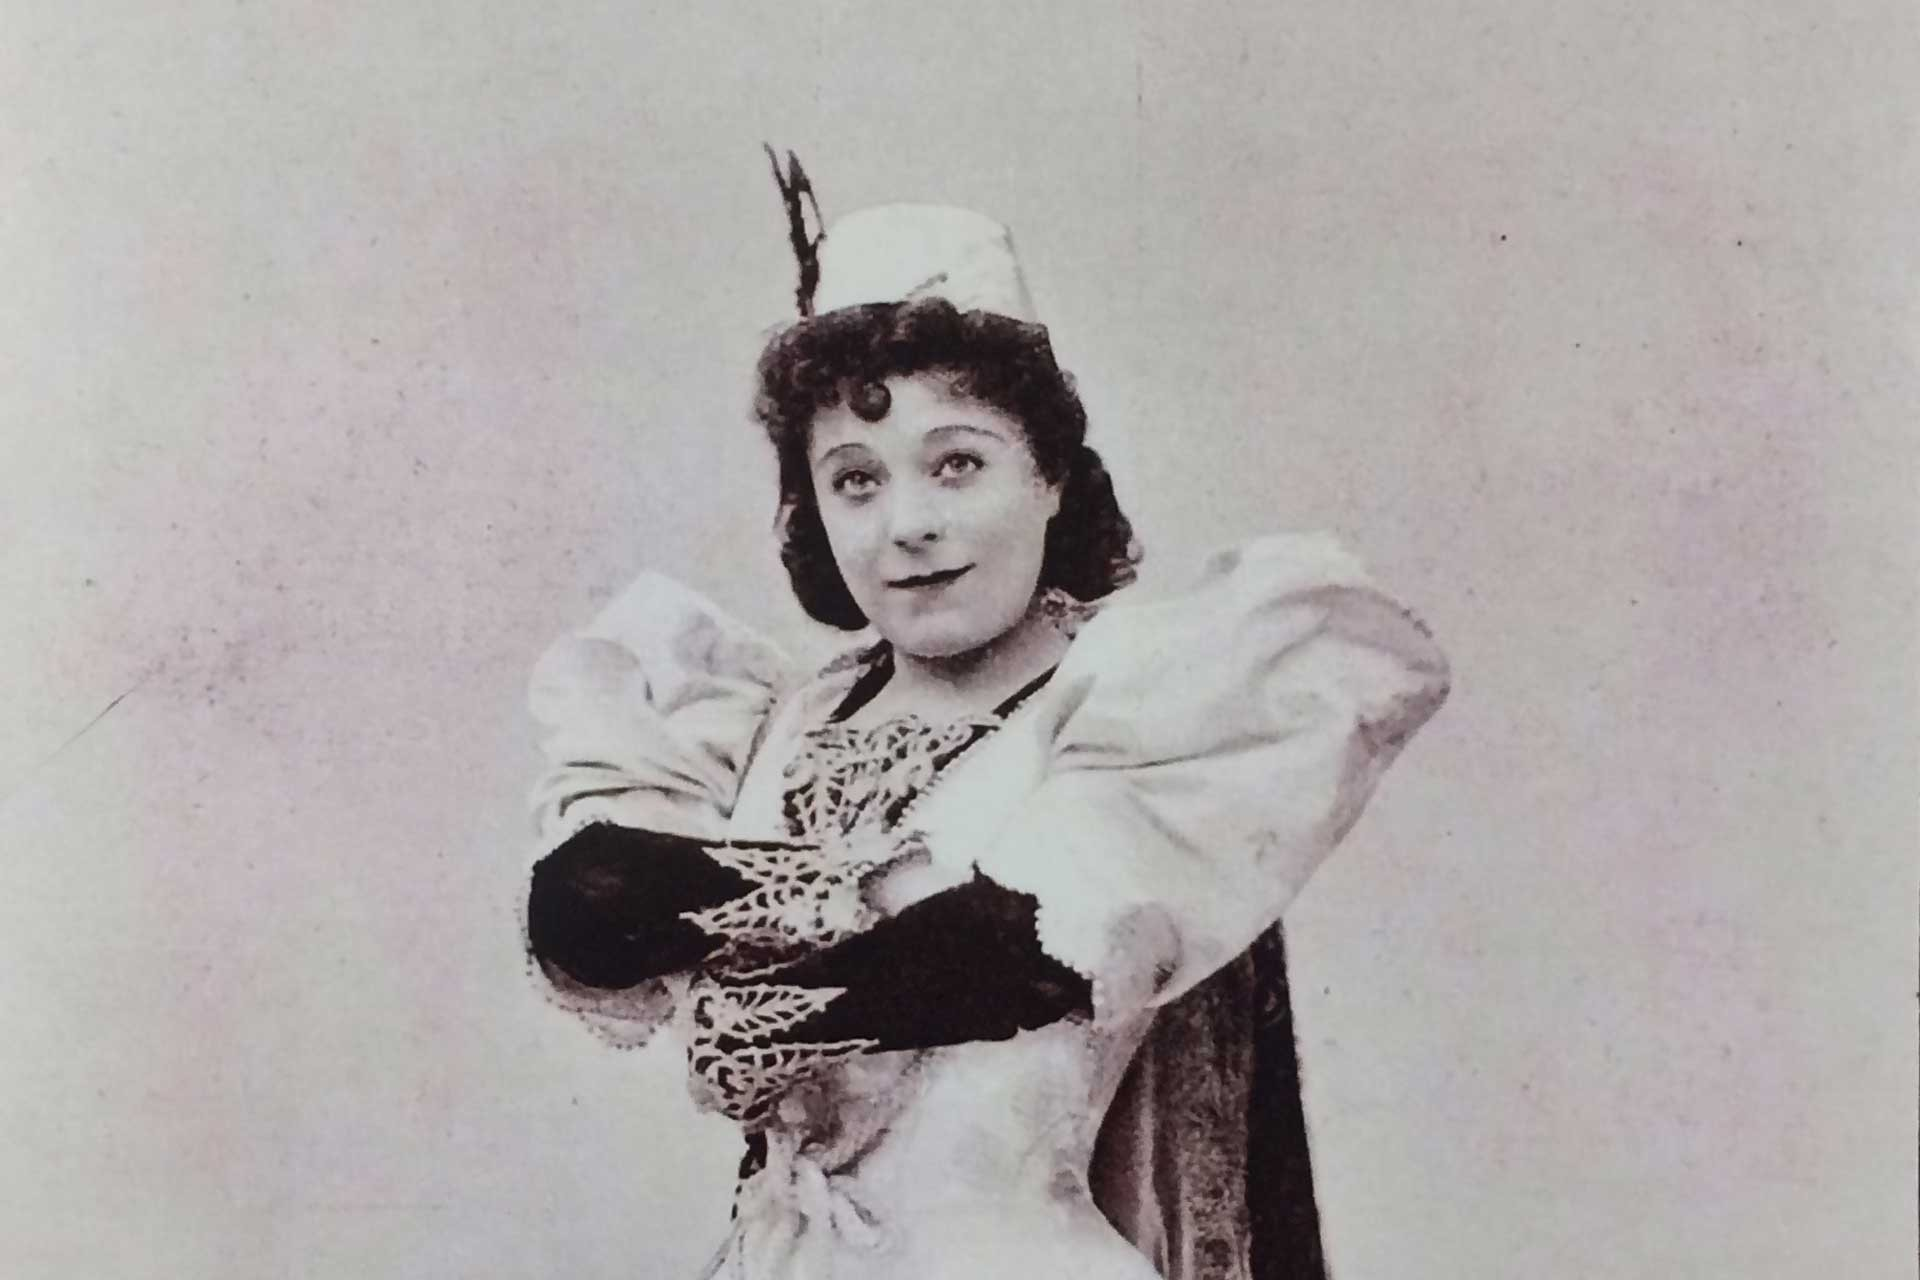 Victorian lady dressed up in a pantomime outfit with folded arms and a wry look on her face